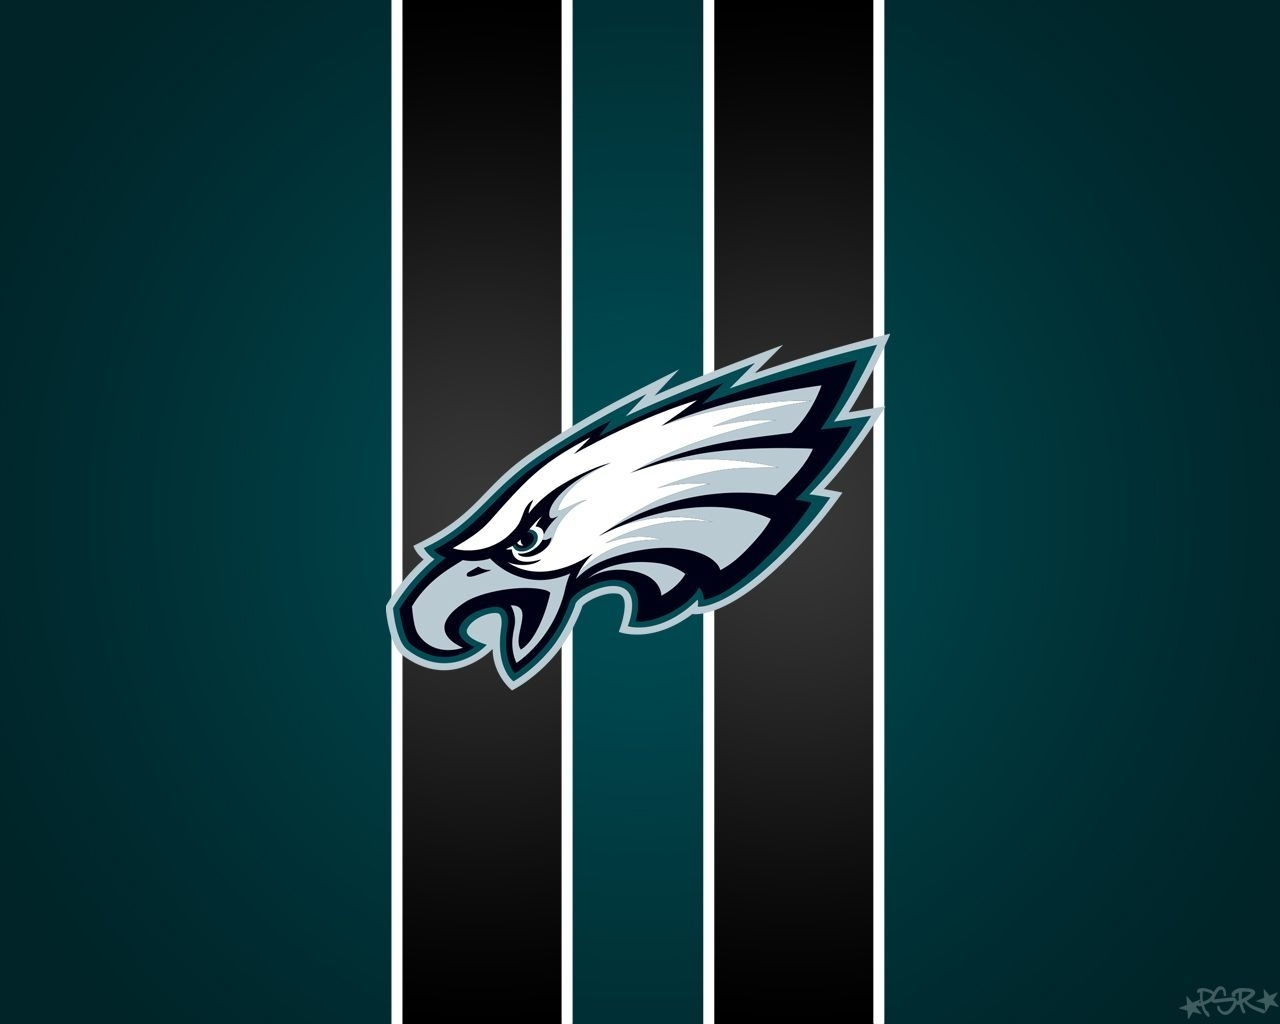 10 New Philadelphia Eagles Wallpaper For Android FULL HD 1920×1080 For PC Background